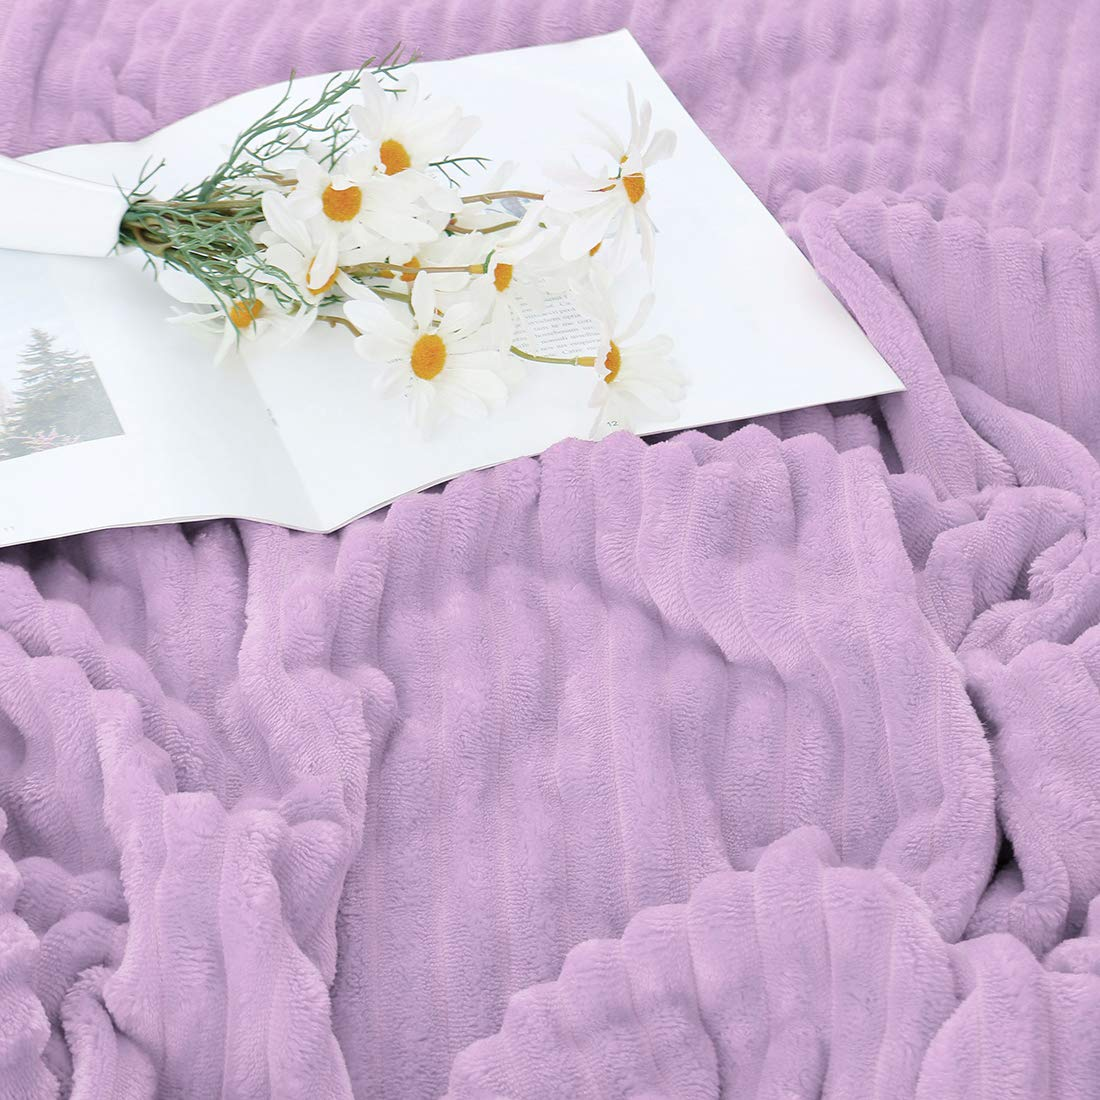 uxcell Reversible Flannel Fleece Blanket Striped Duvet Cover Twin Size Super Soft Warm Fuzzy Plush Solid Blanket for Couch and Bed 59 x 78 Lavender,59 x 78